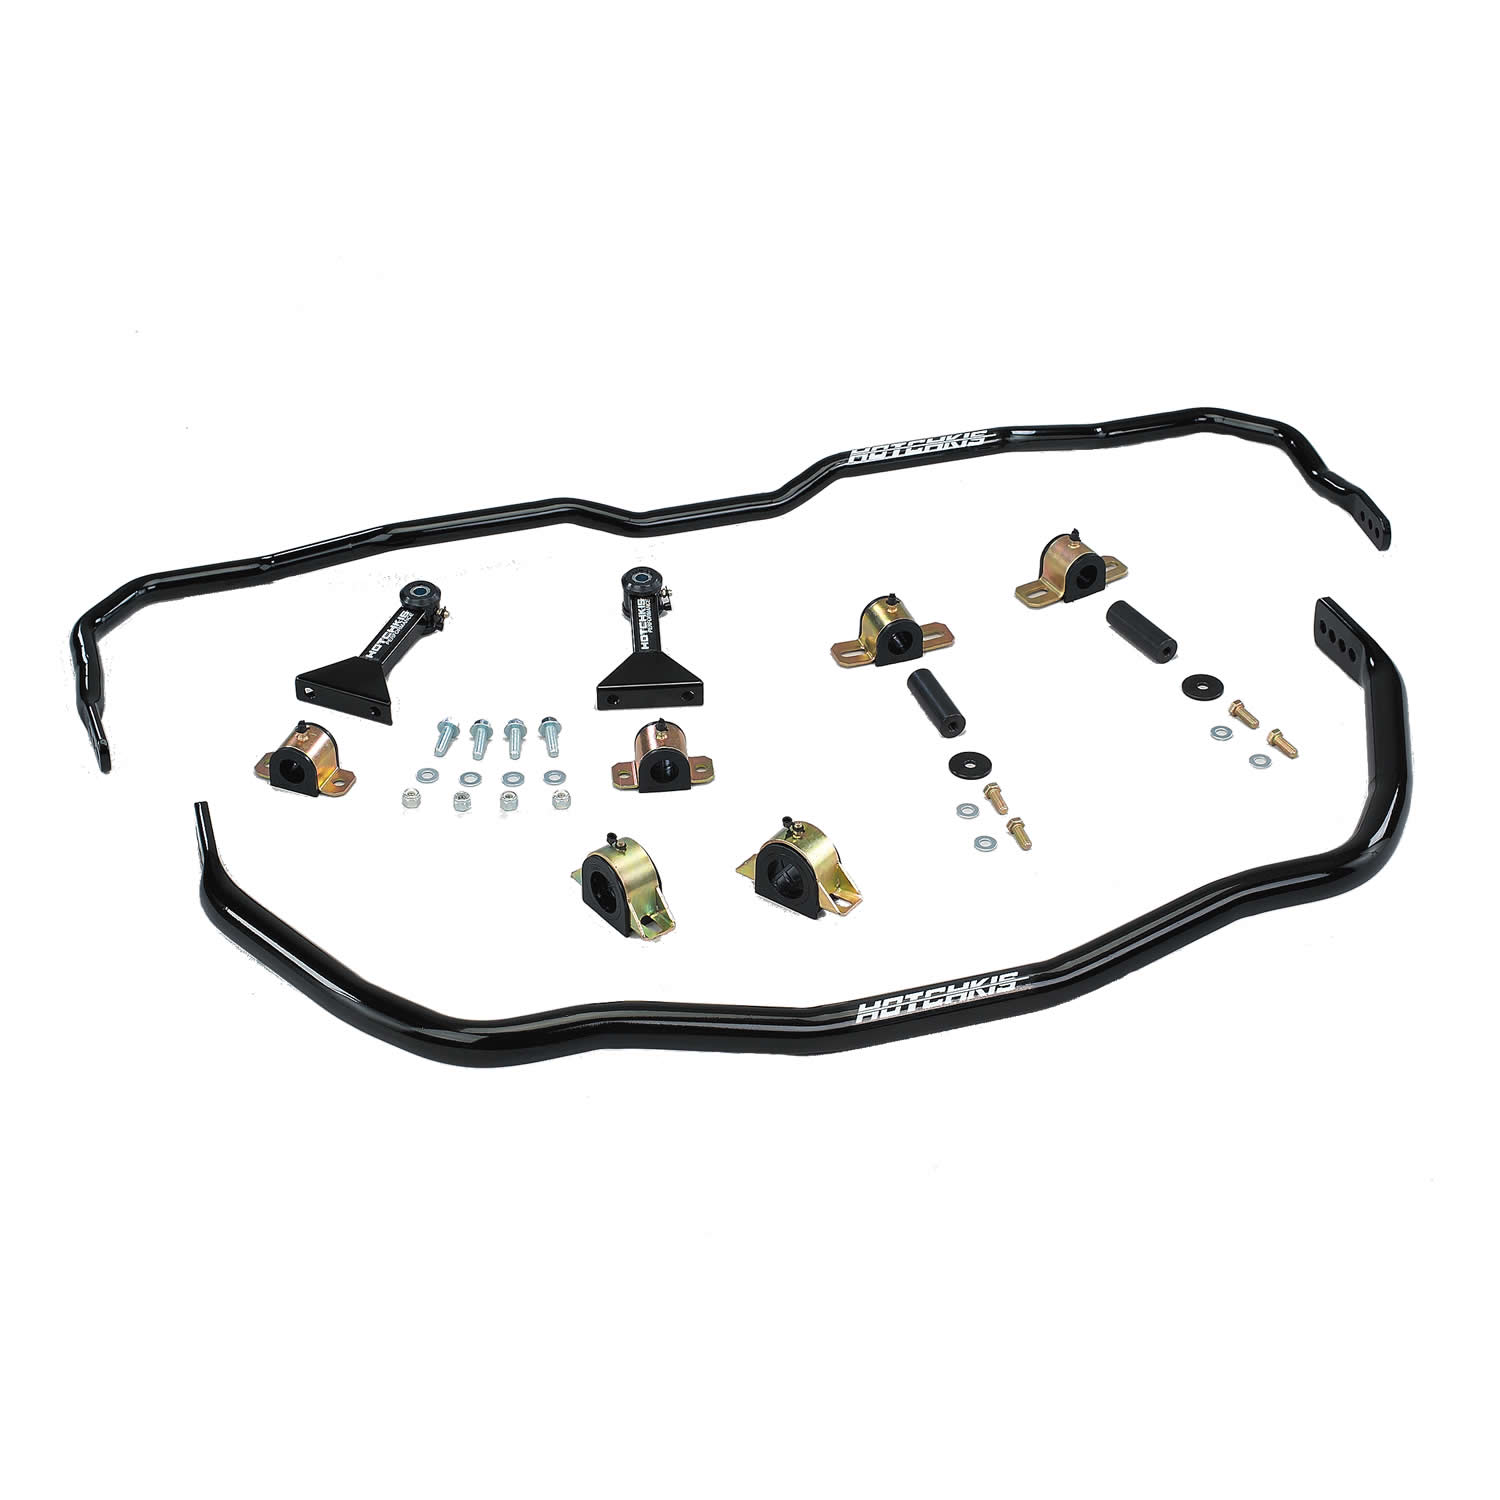 2005-2014 Mustang Sport Sway Bars from Hotchkis Sport Suspension